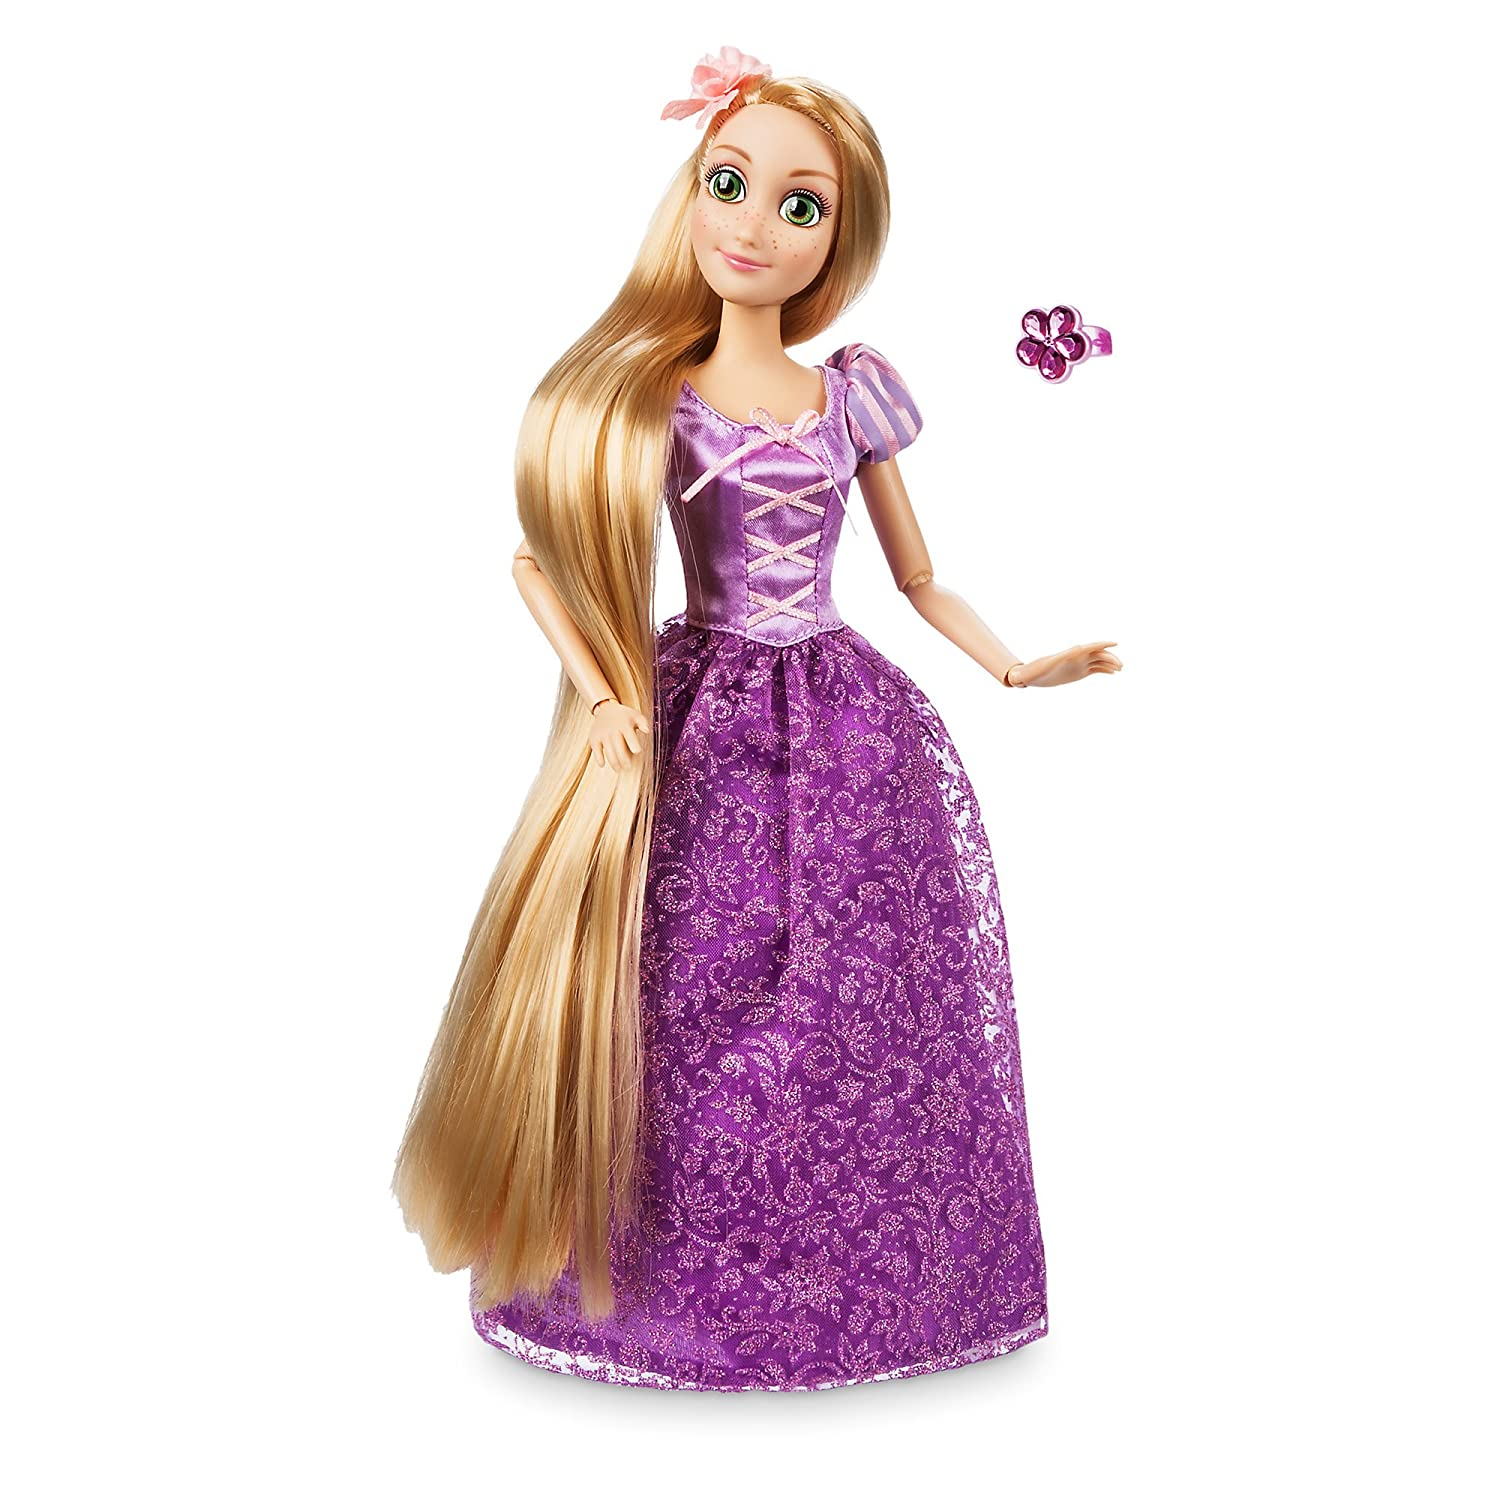 11 1//2 inch 460017964236 Tangled Disney Rapunzel Classic Doll with Ring